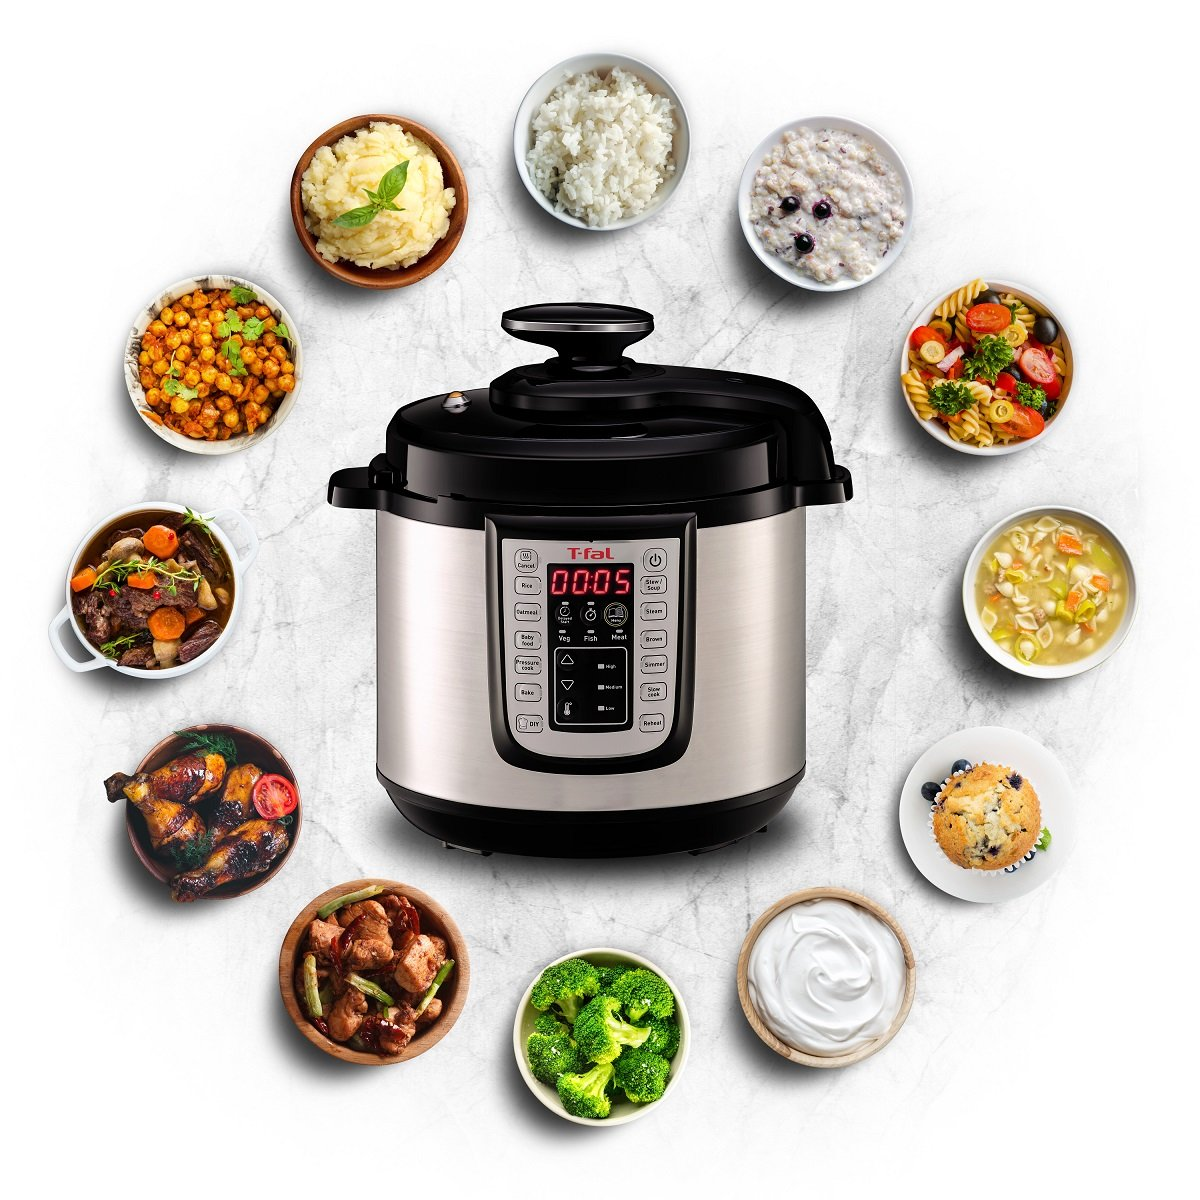 $99.99 (now: $163.64) T-fal CY505E 25-all-in-1 Multicooker Programmable Electric Fast Pressure Cooker, 1100-Watts, 6-Quart, Stainless Steel